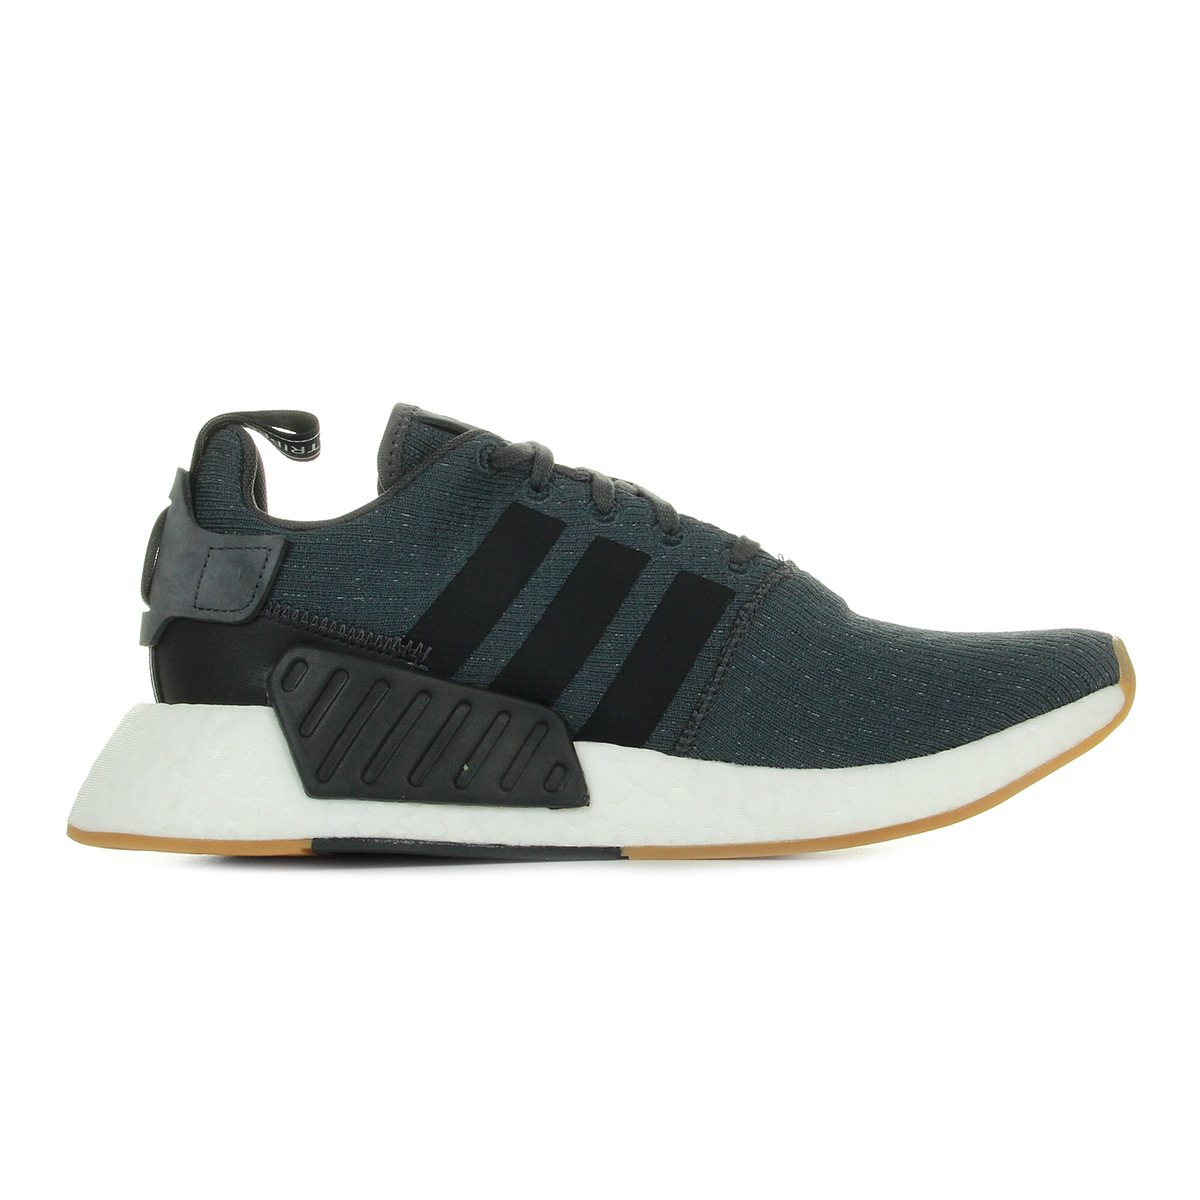 adidas Nmd R2 CQ2400, Baskets mode homme